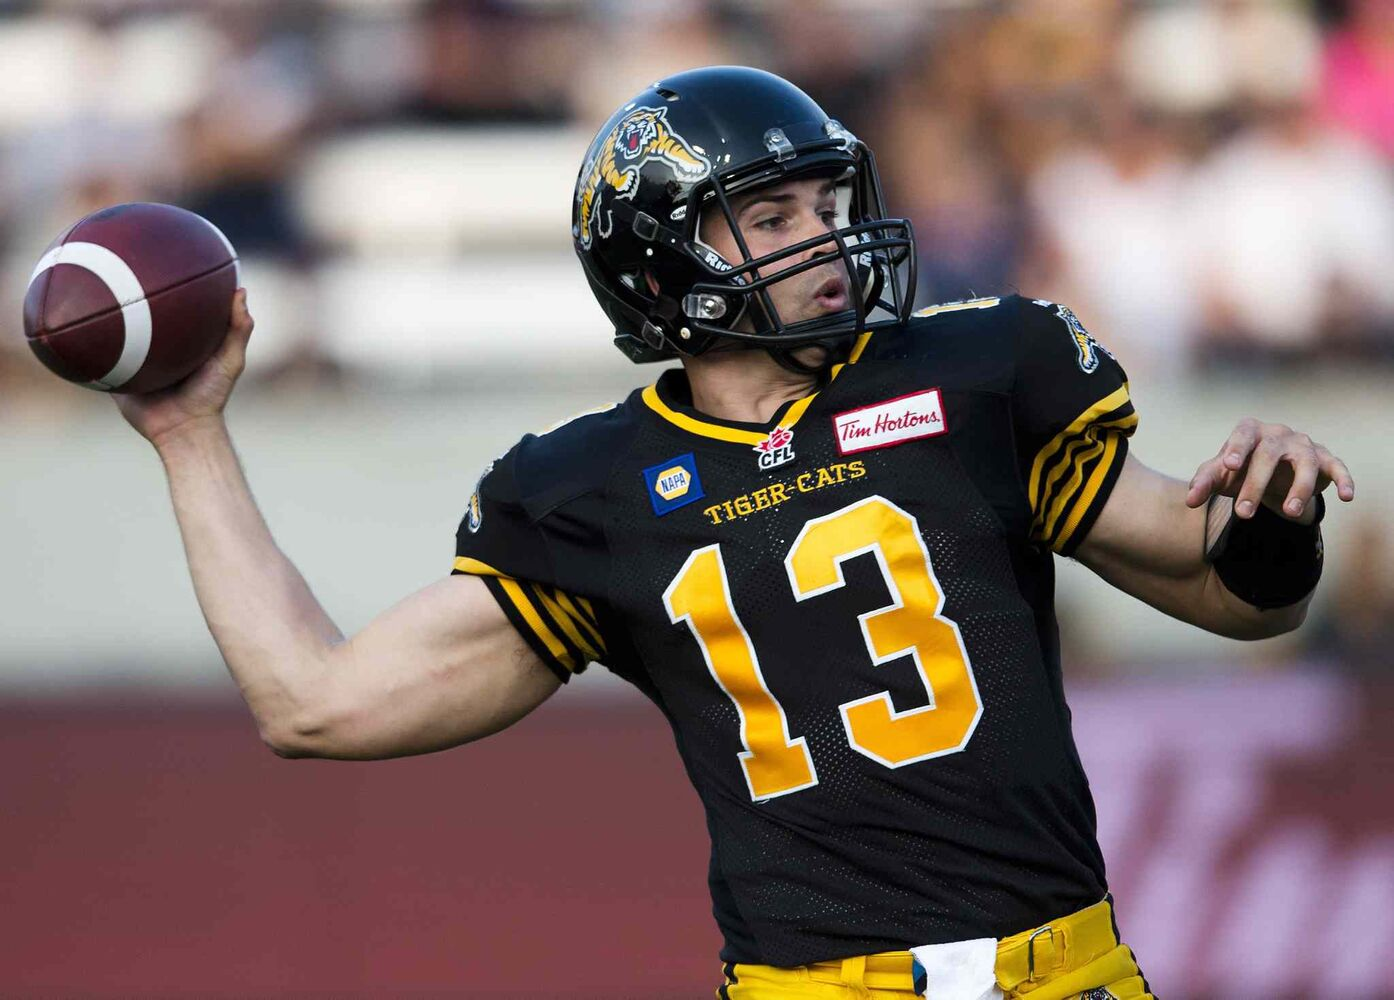 Hamilton Tiger-Cats' quarterback Dan LeFevour makes a pass against the Winnipeg Blue Bombers' during the first half.